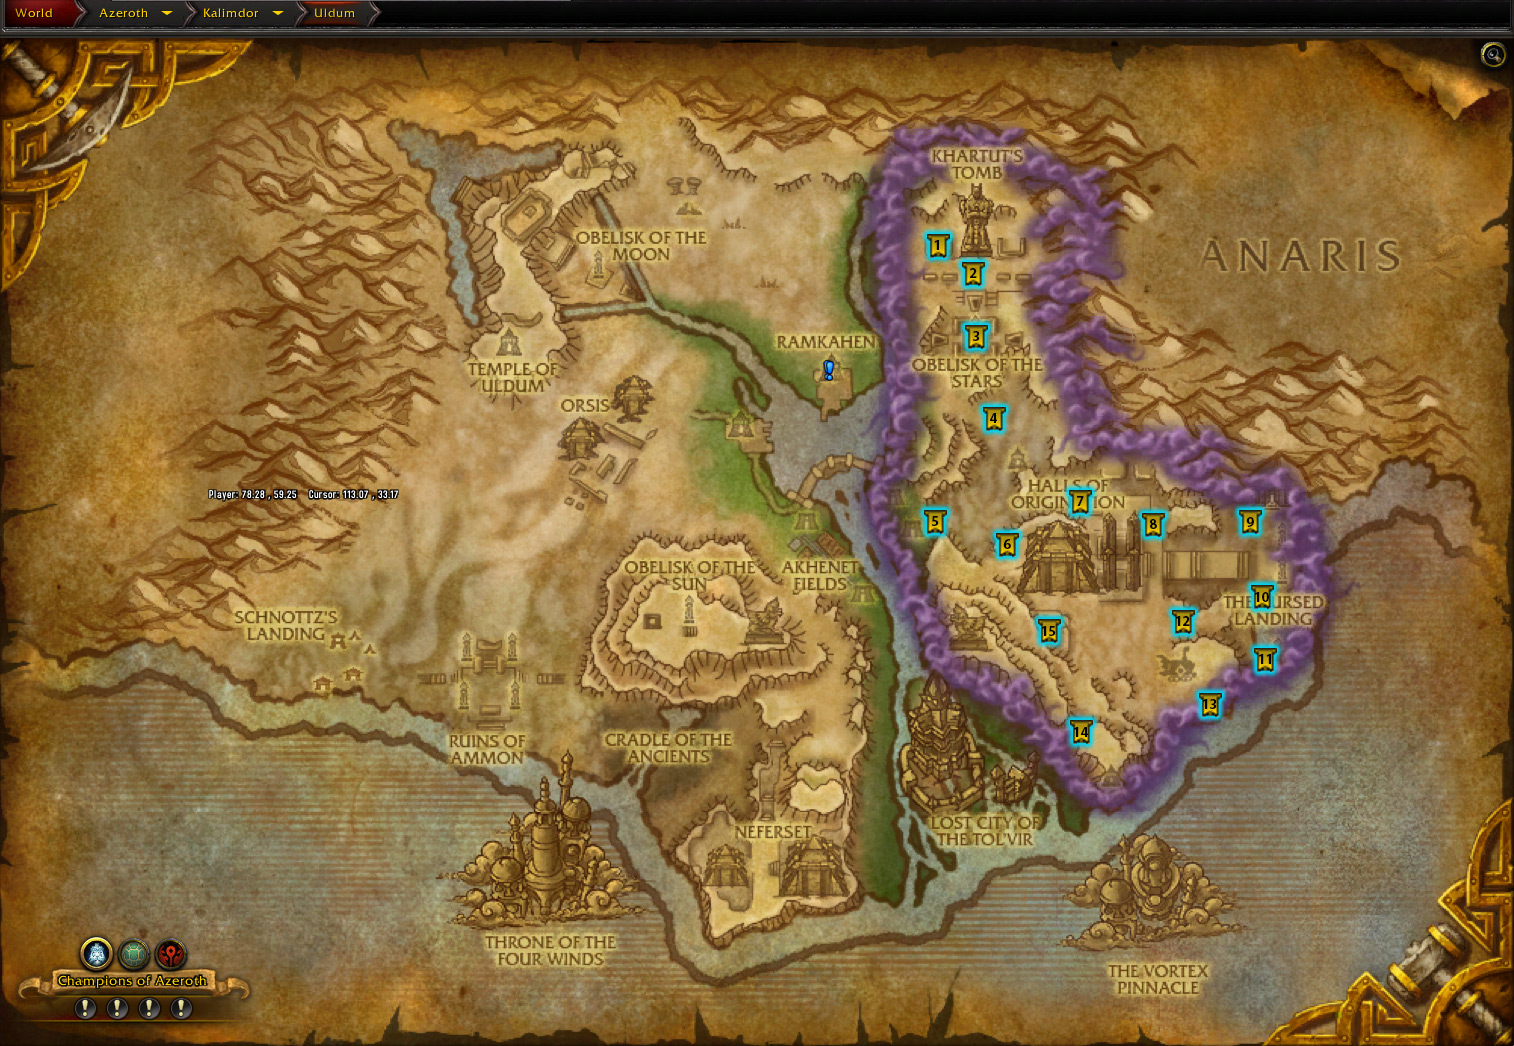 8.3 Uldum Amathet Advance World Quests Map